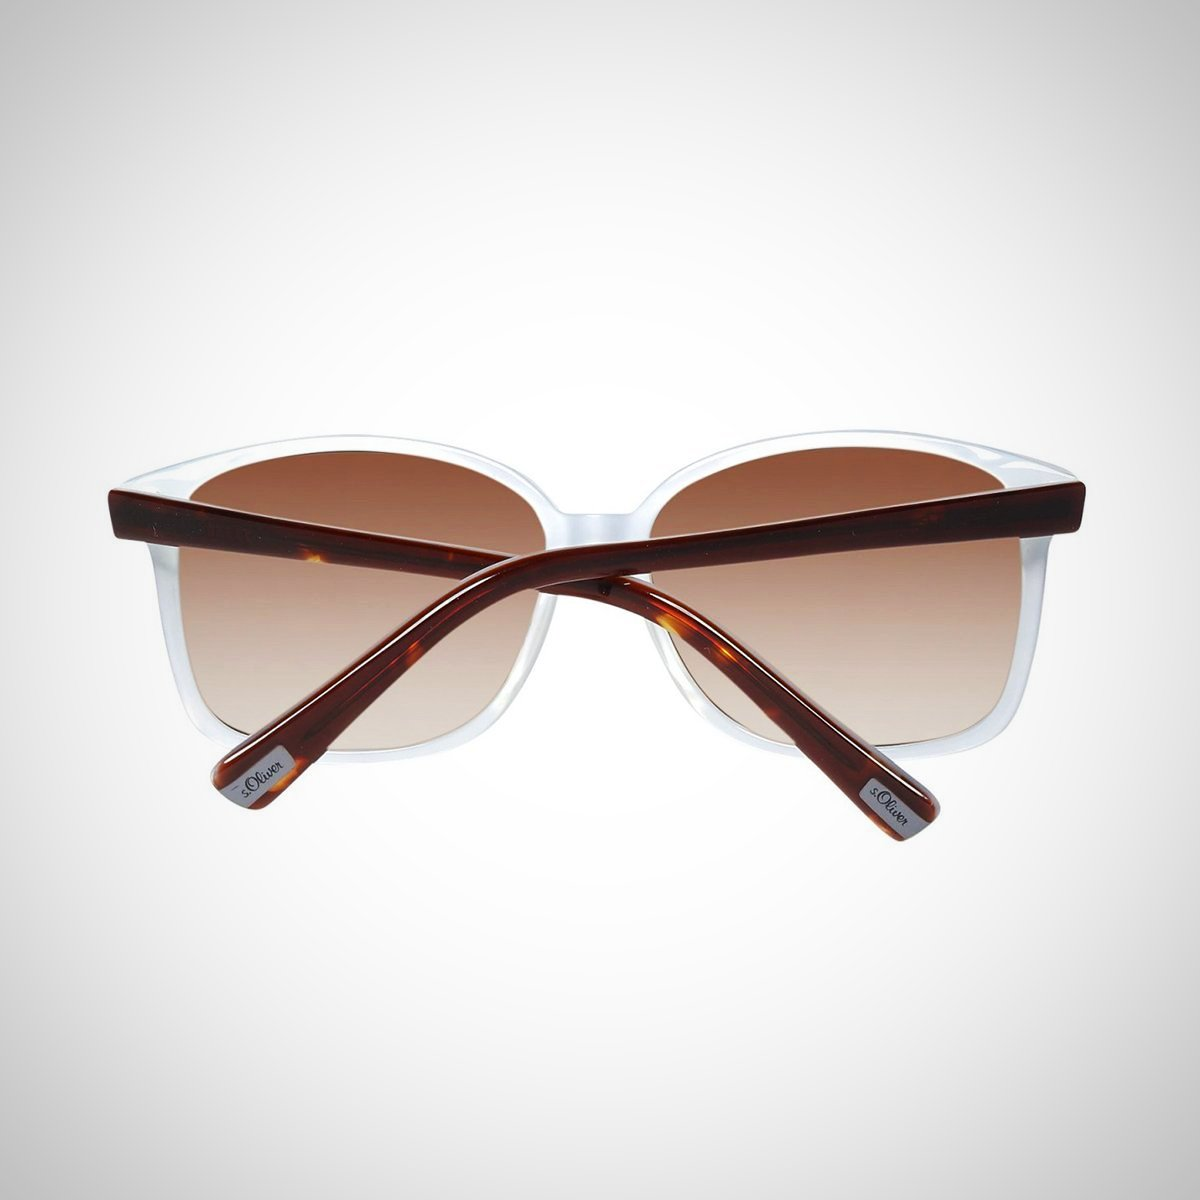 S. Oliver 99858 775 Ladies Brown Sunglasses